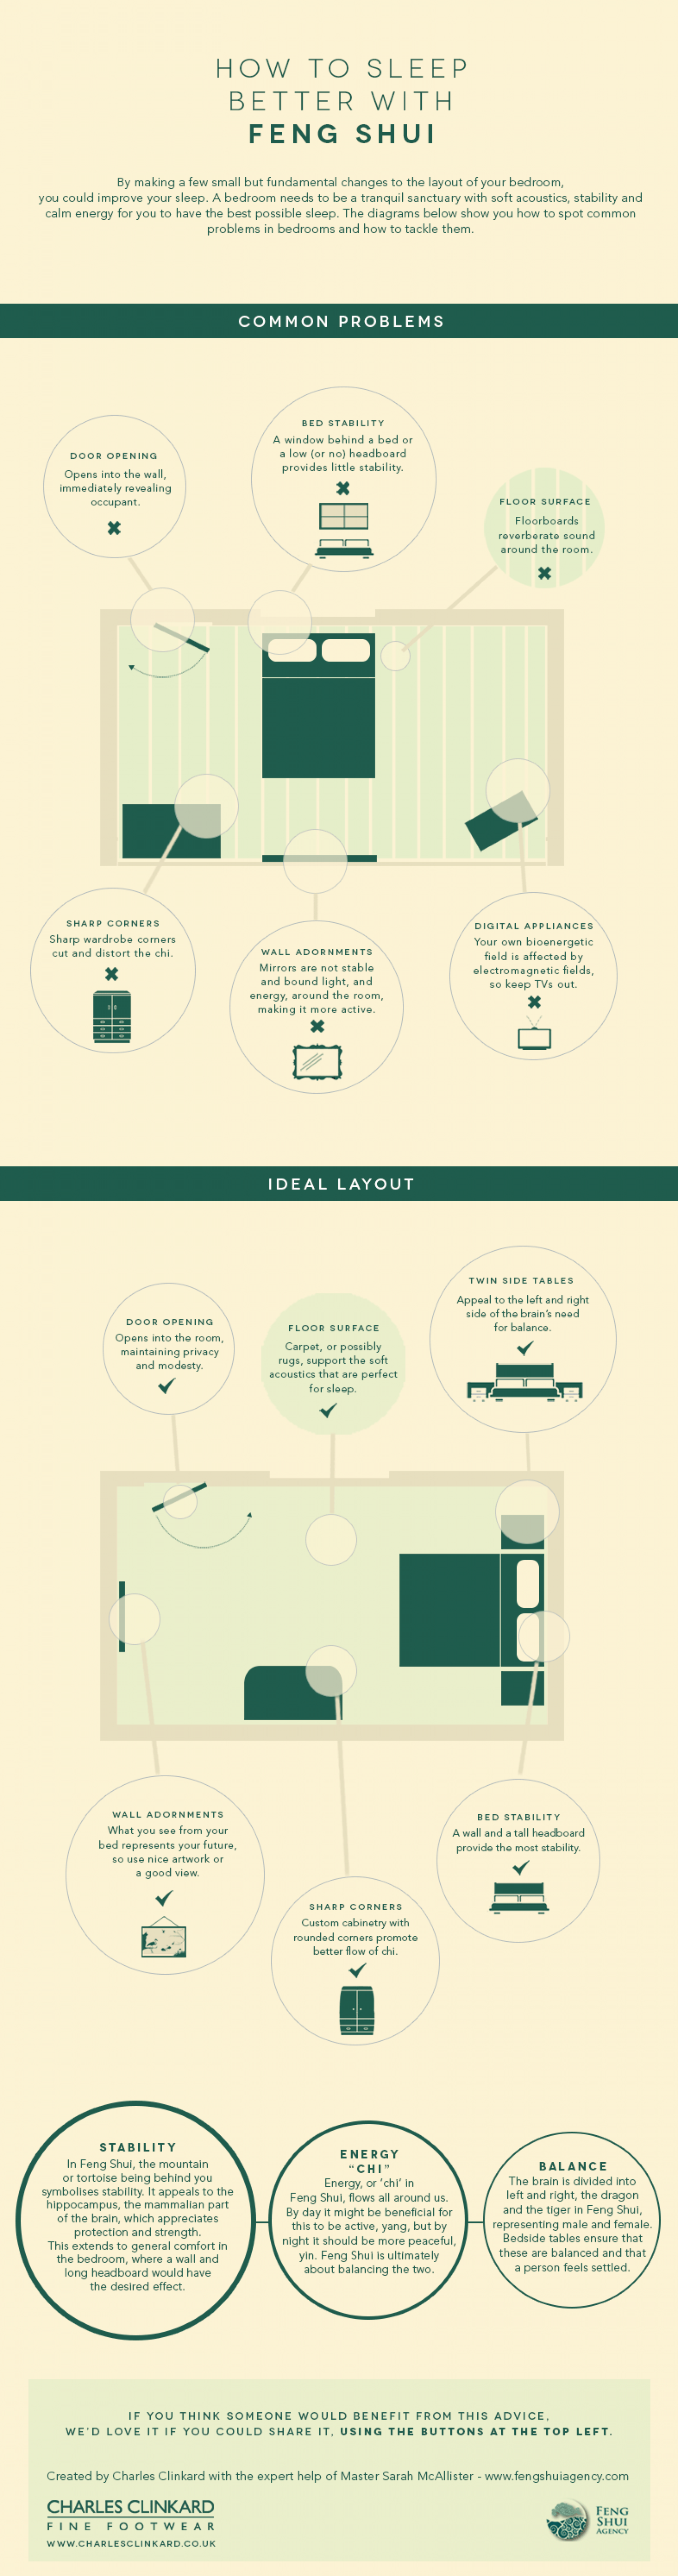 infographic feng shui. How To Sleep Better With Feng Shui Infographic